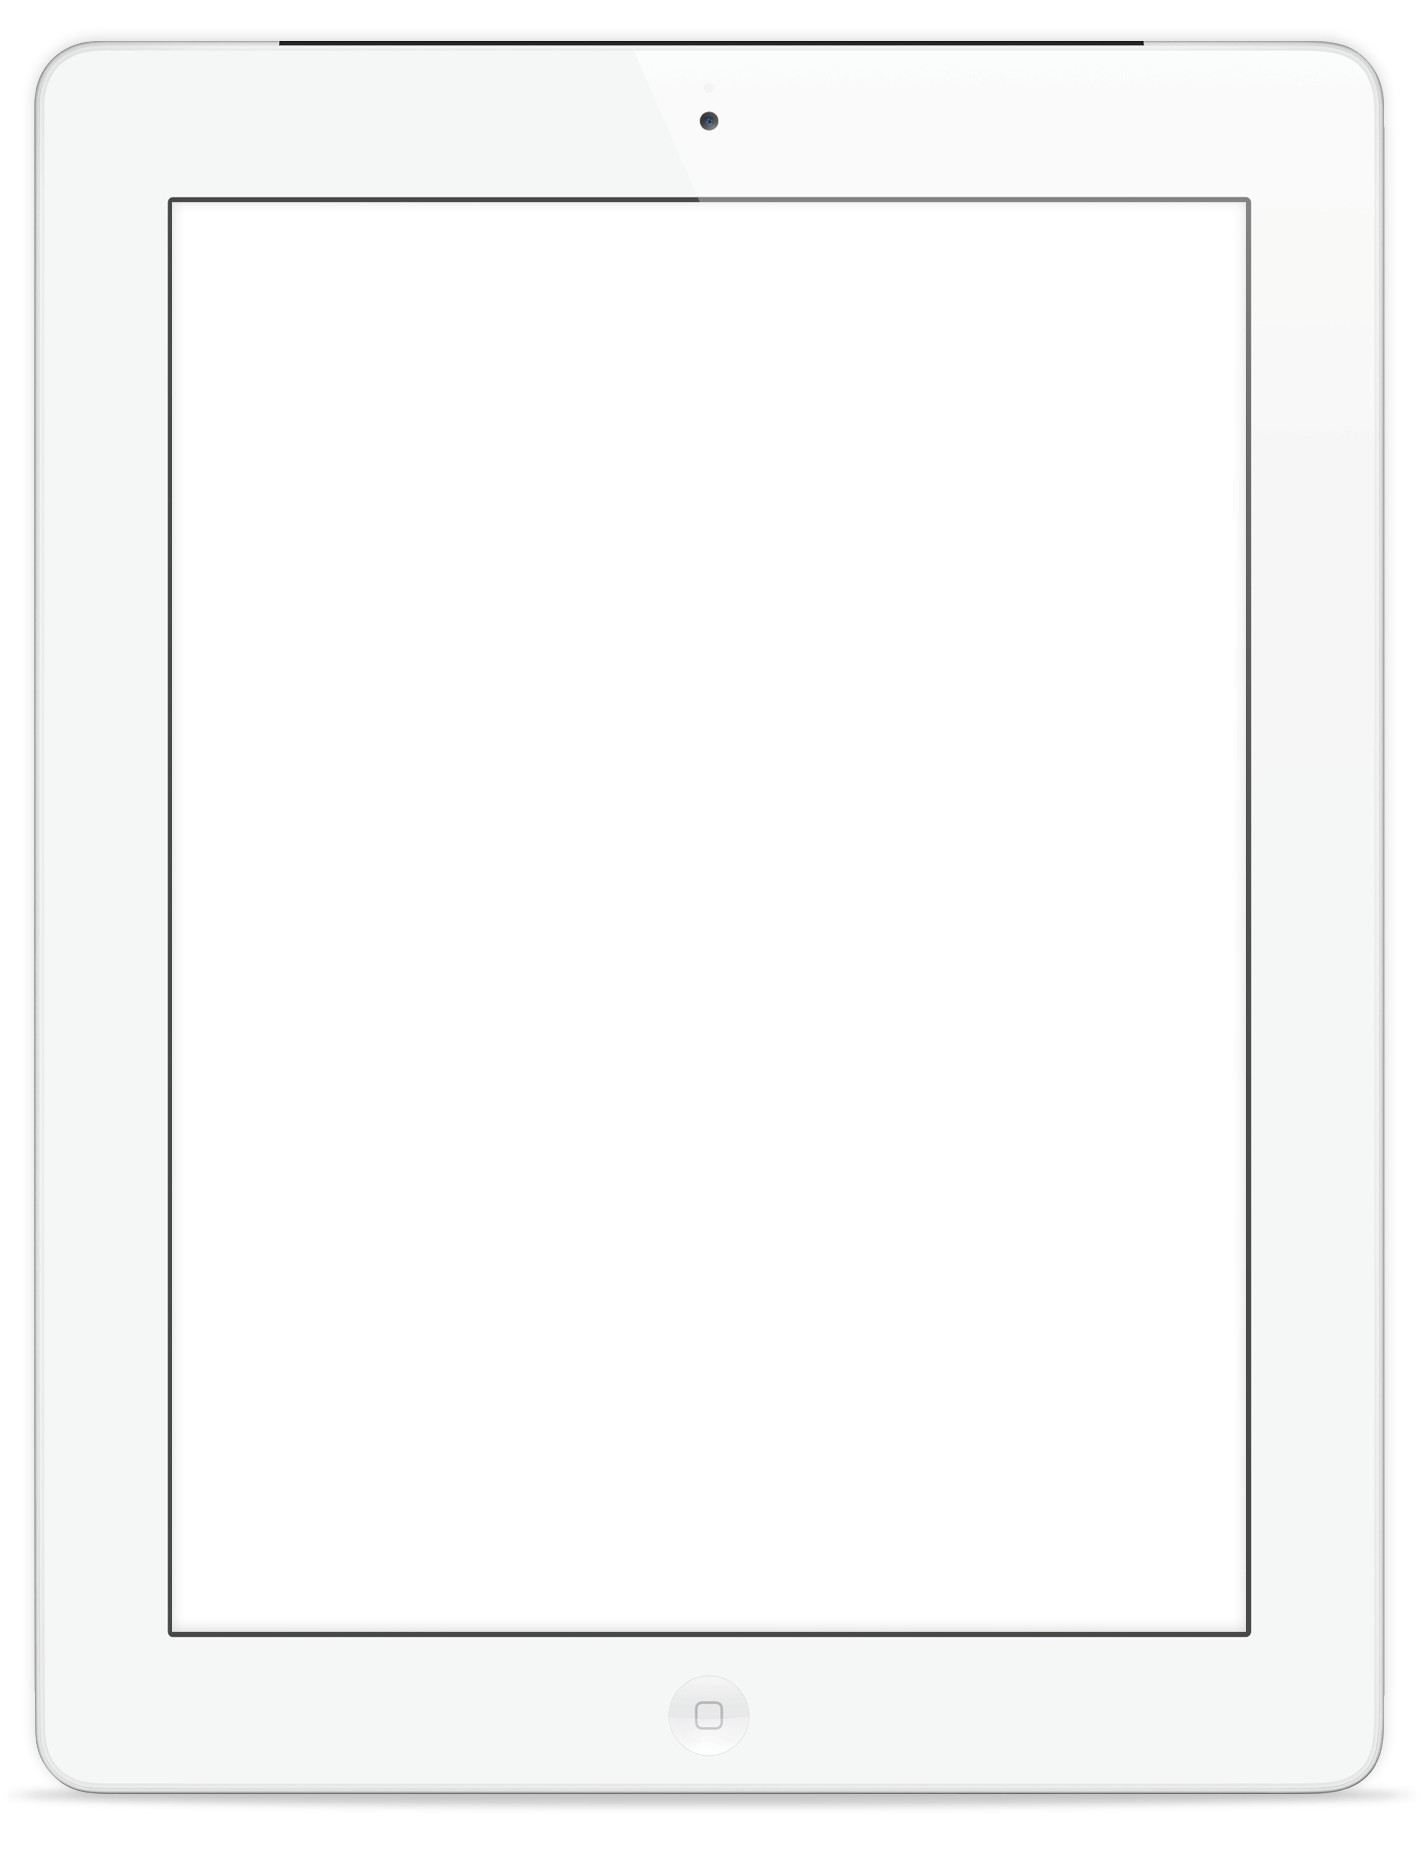 Ipad template png. Surenix ayecon for ios